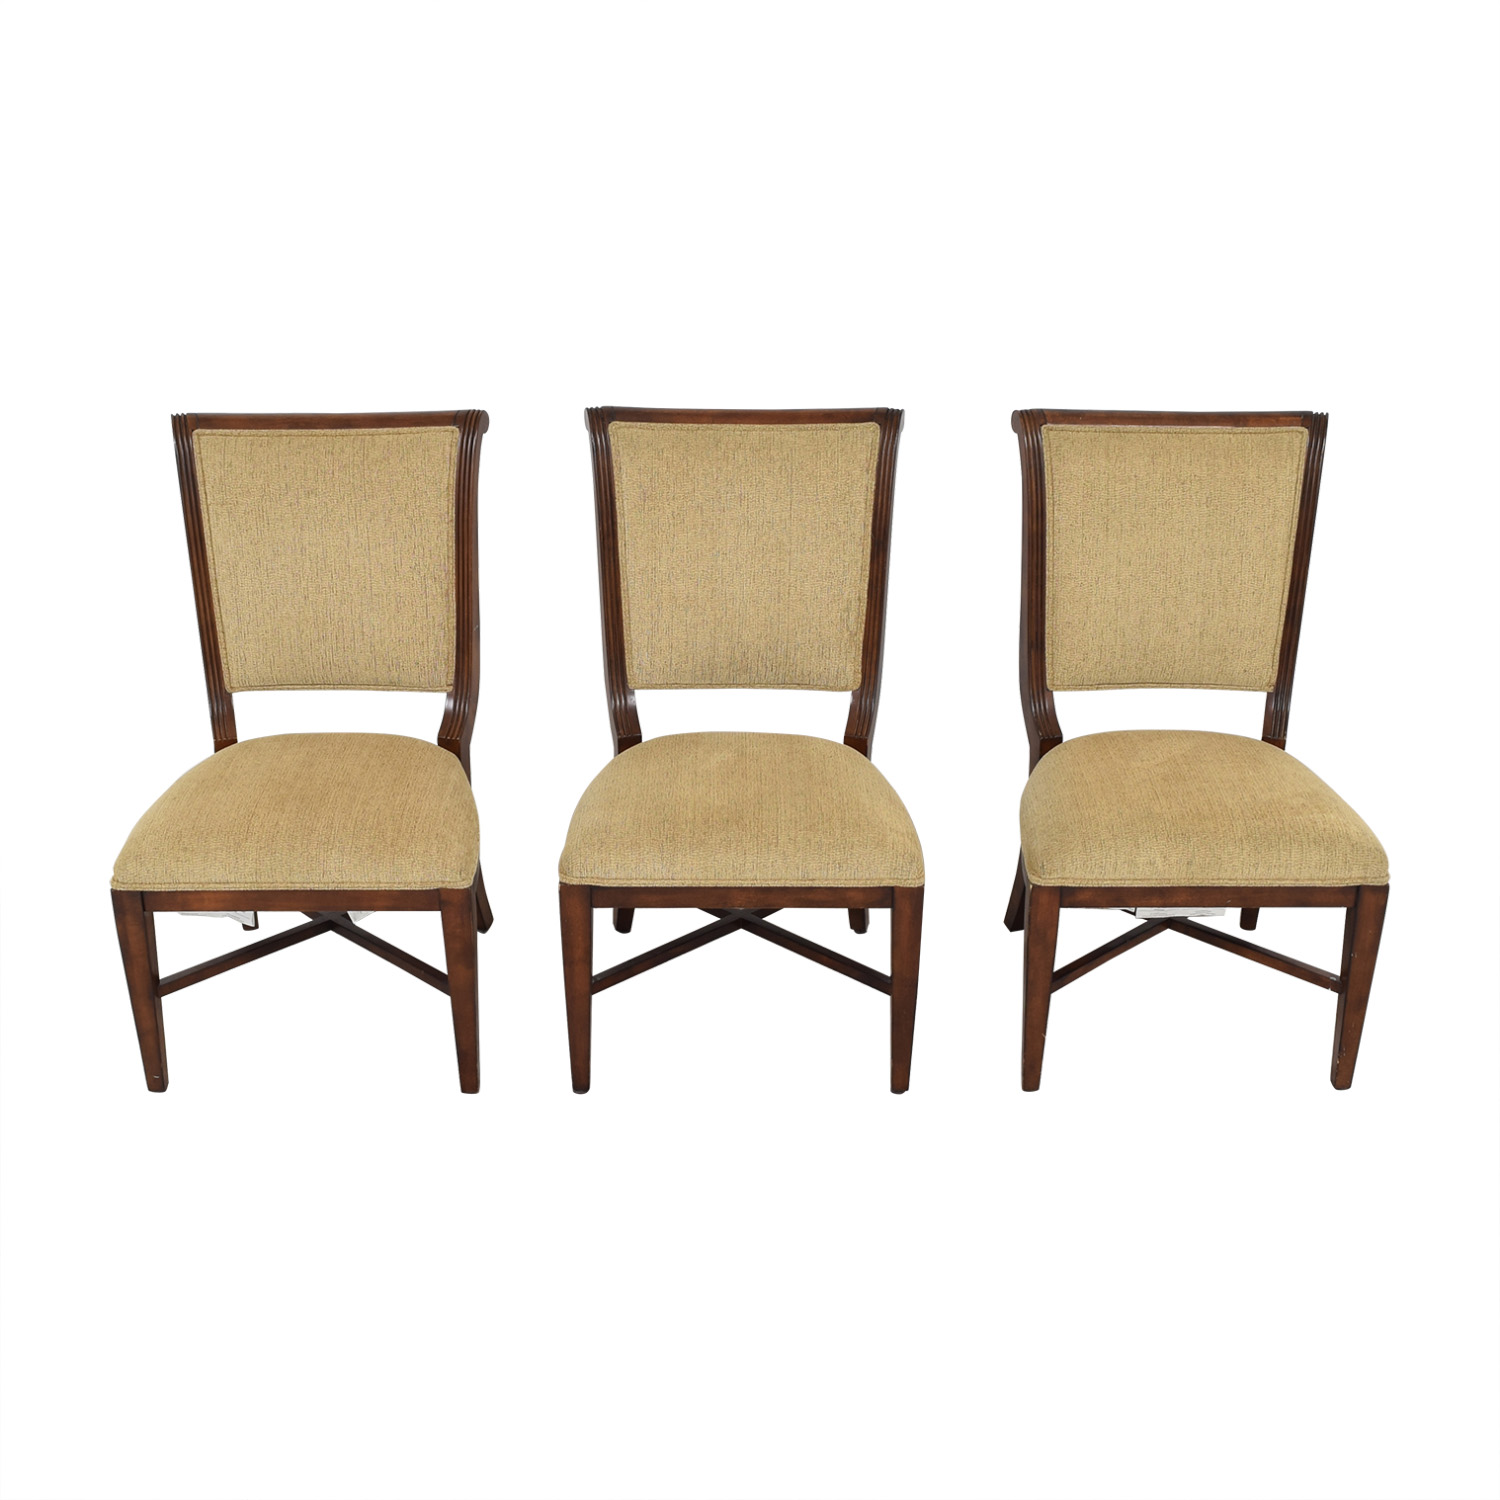 Lexington Furniture Lexington Furniture Upholstered Dining Chairs Chairs